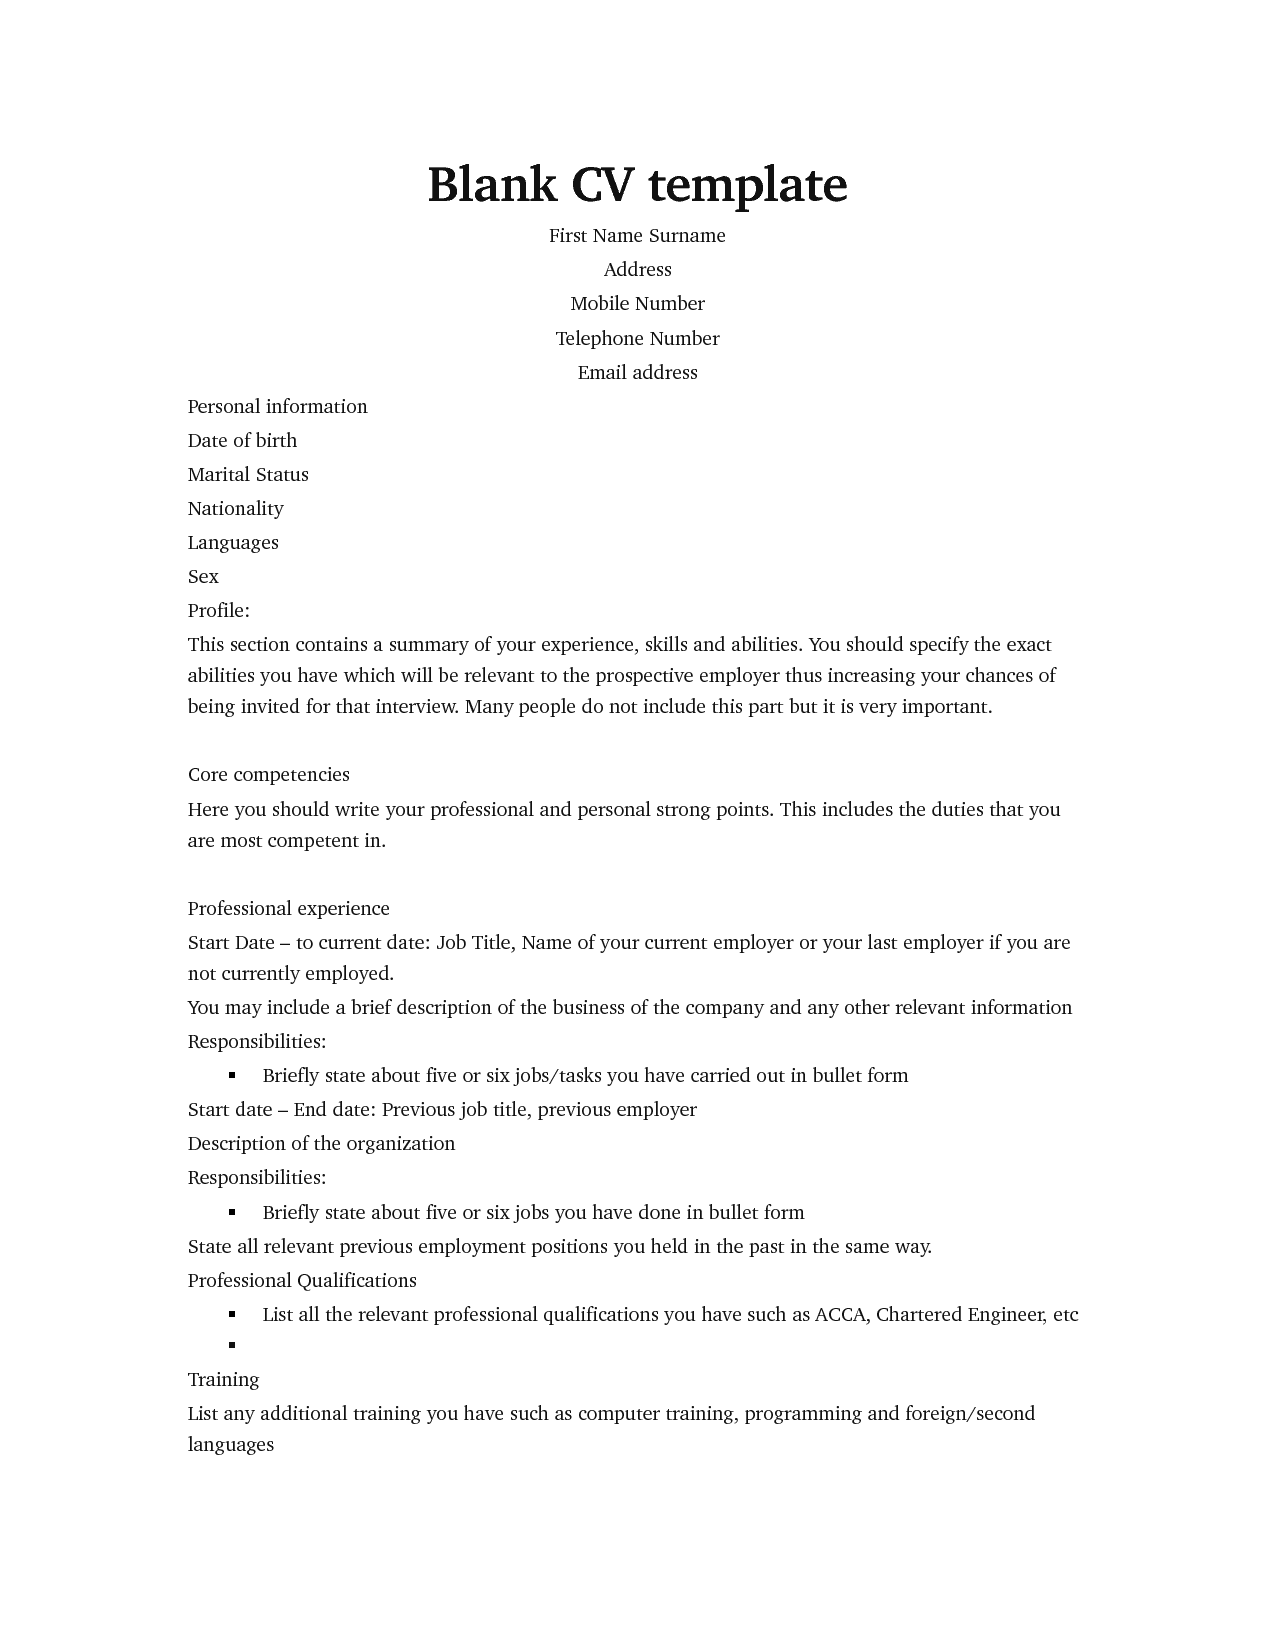 Professional blank cv template for job seekers cv template image yelopaper